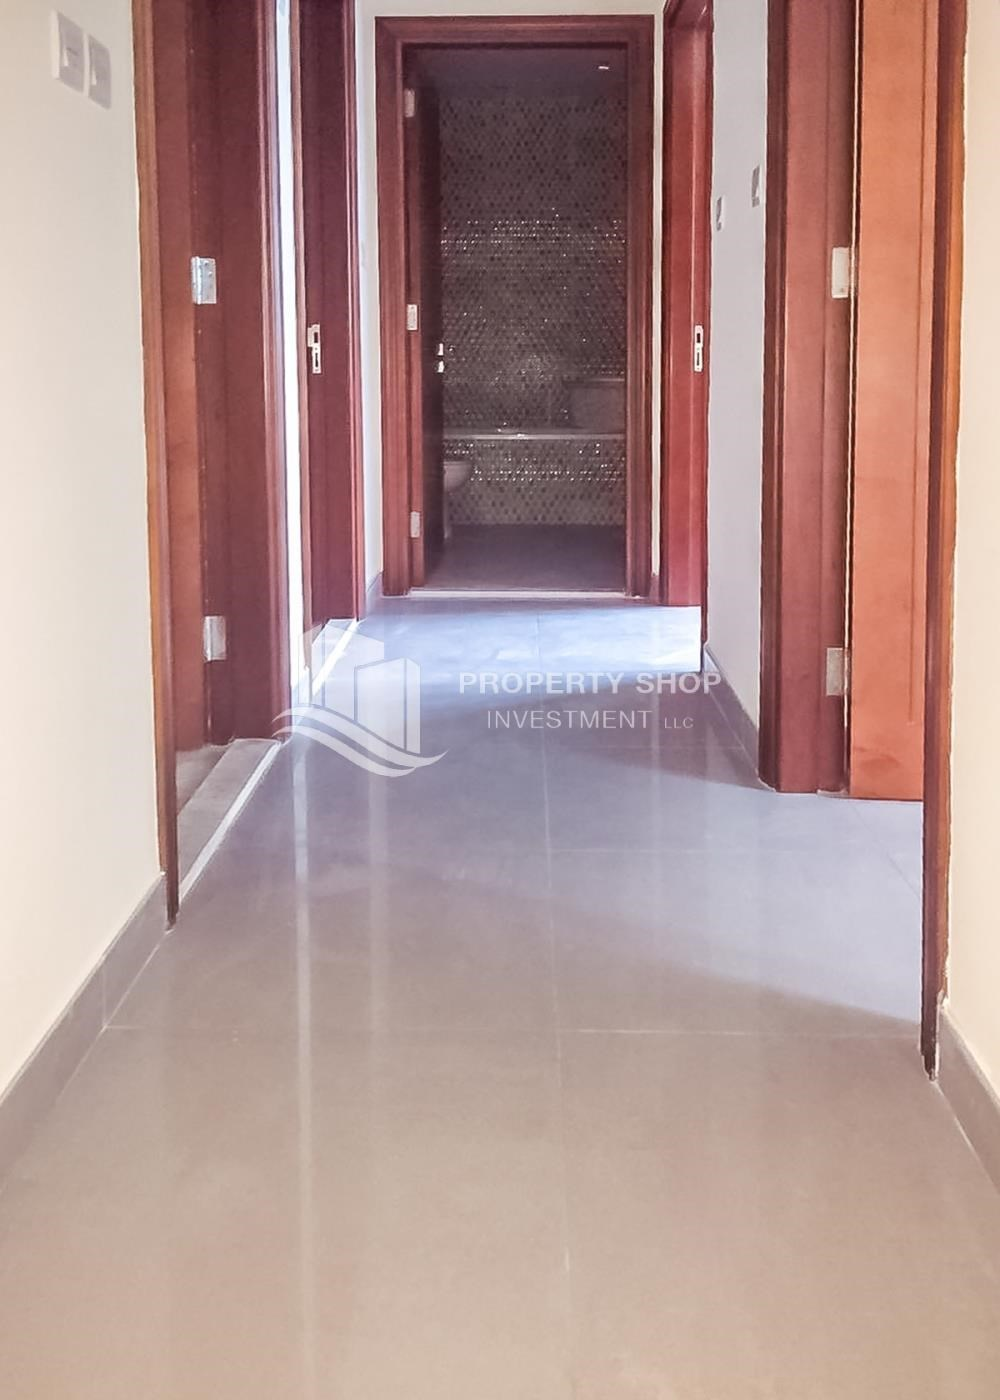 Corridor - Vacant! Well maintained Apt with allocated parking.